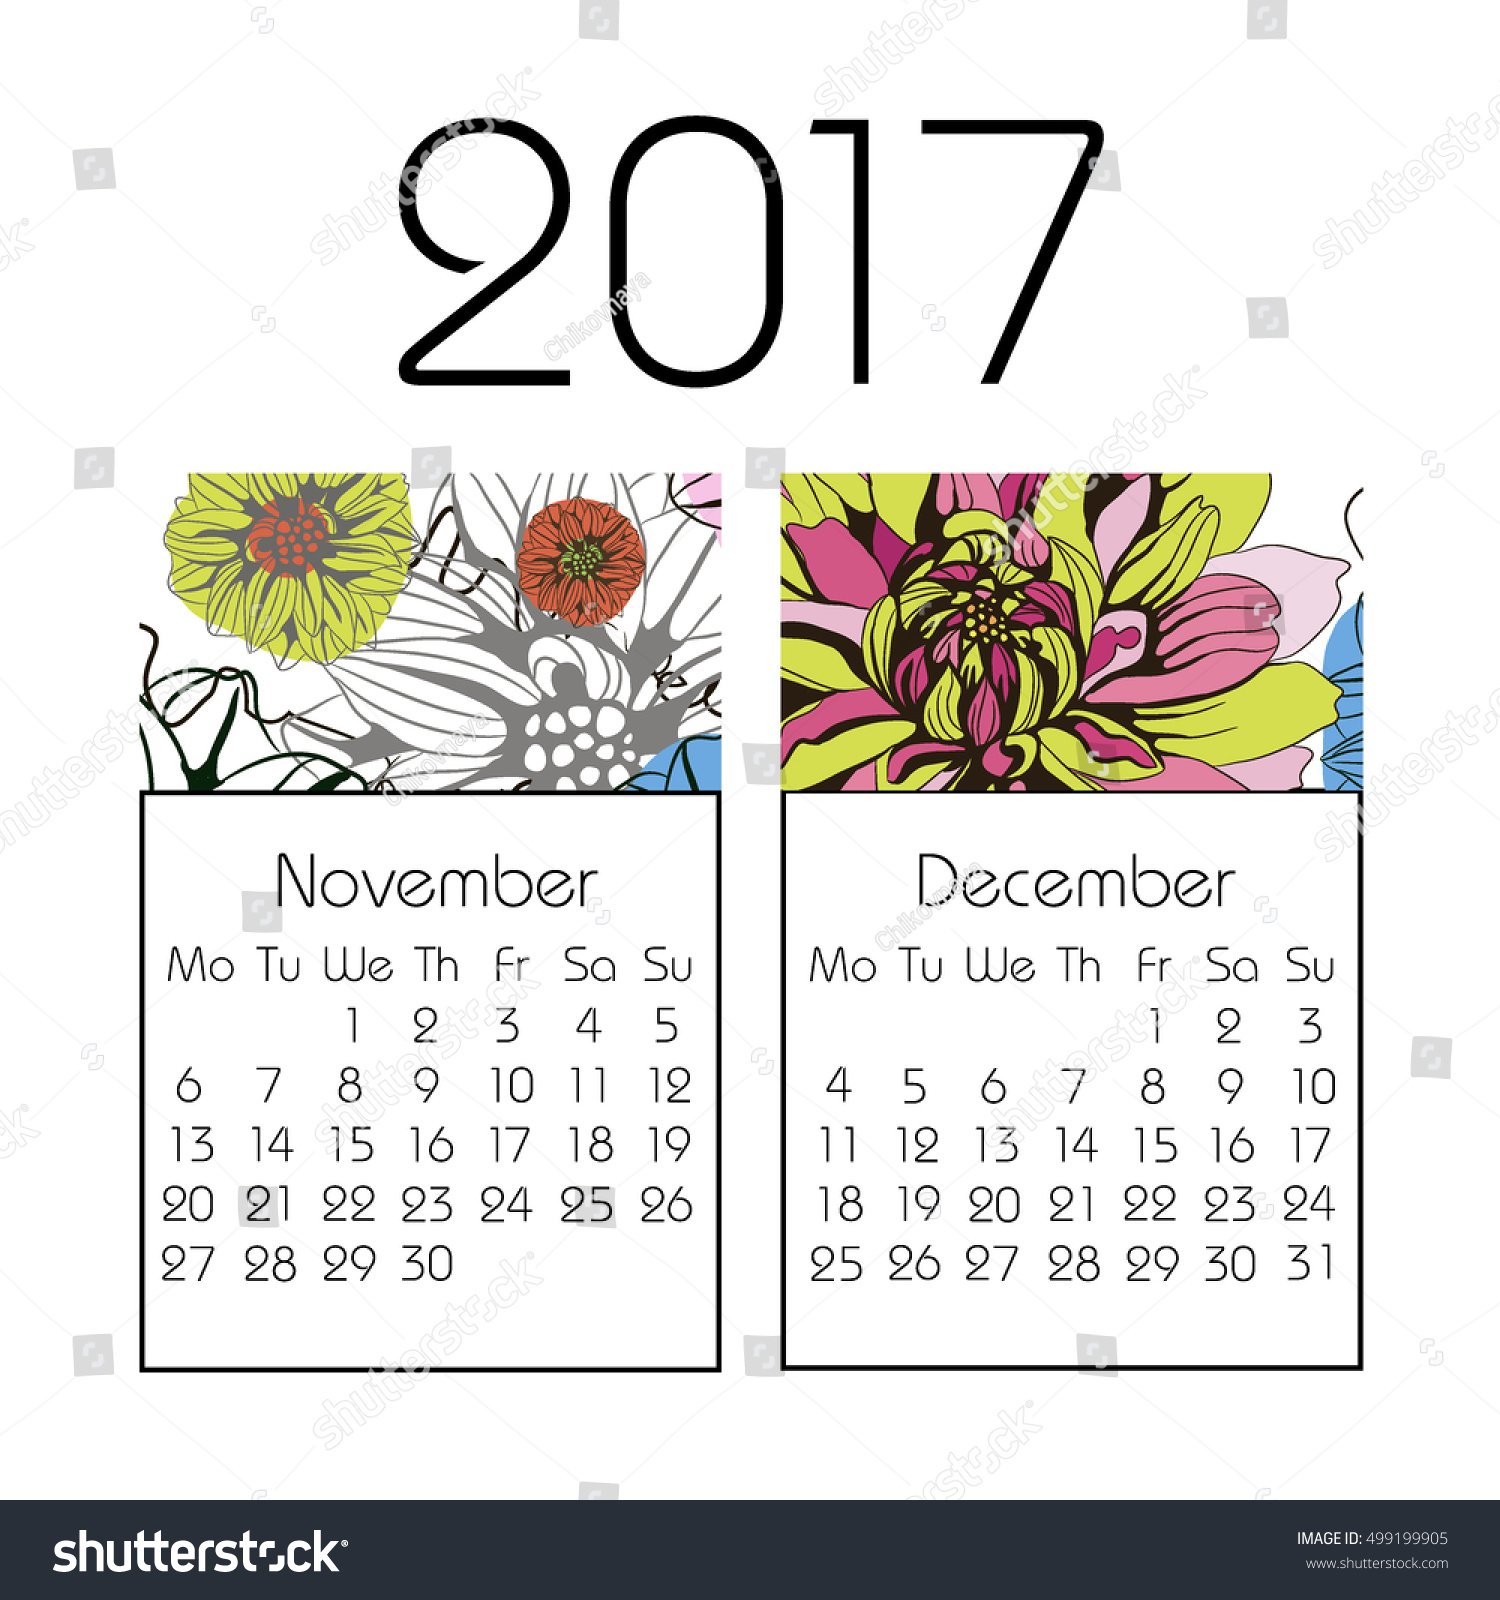 Calendar 2017 On White Background Vector Stock Vector ...